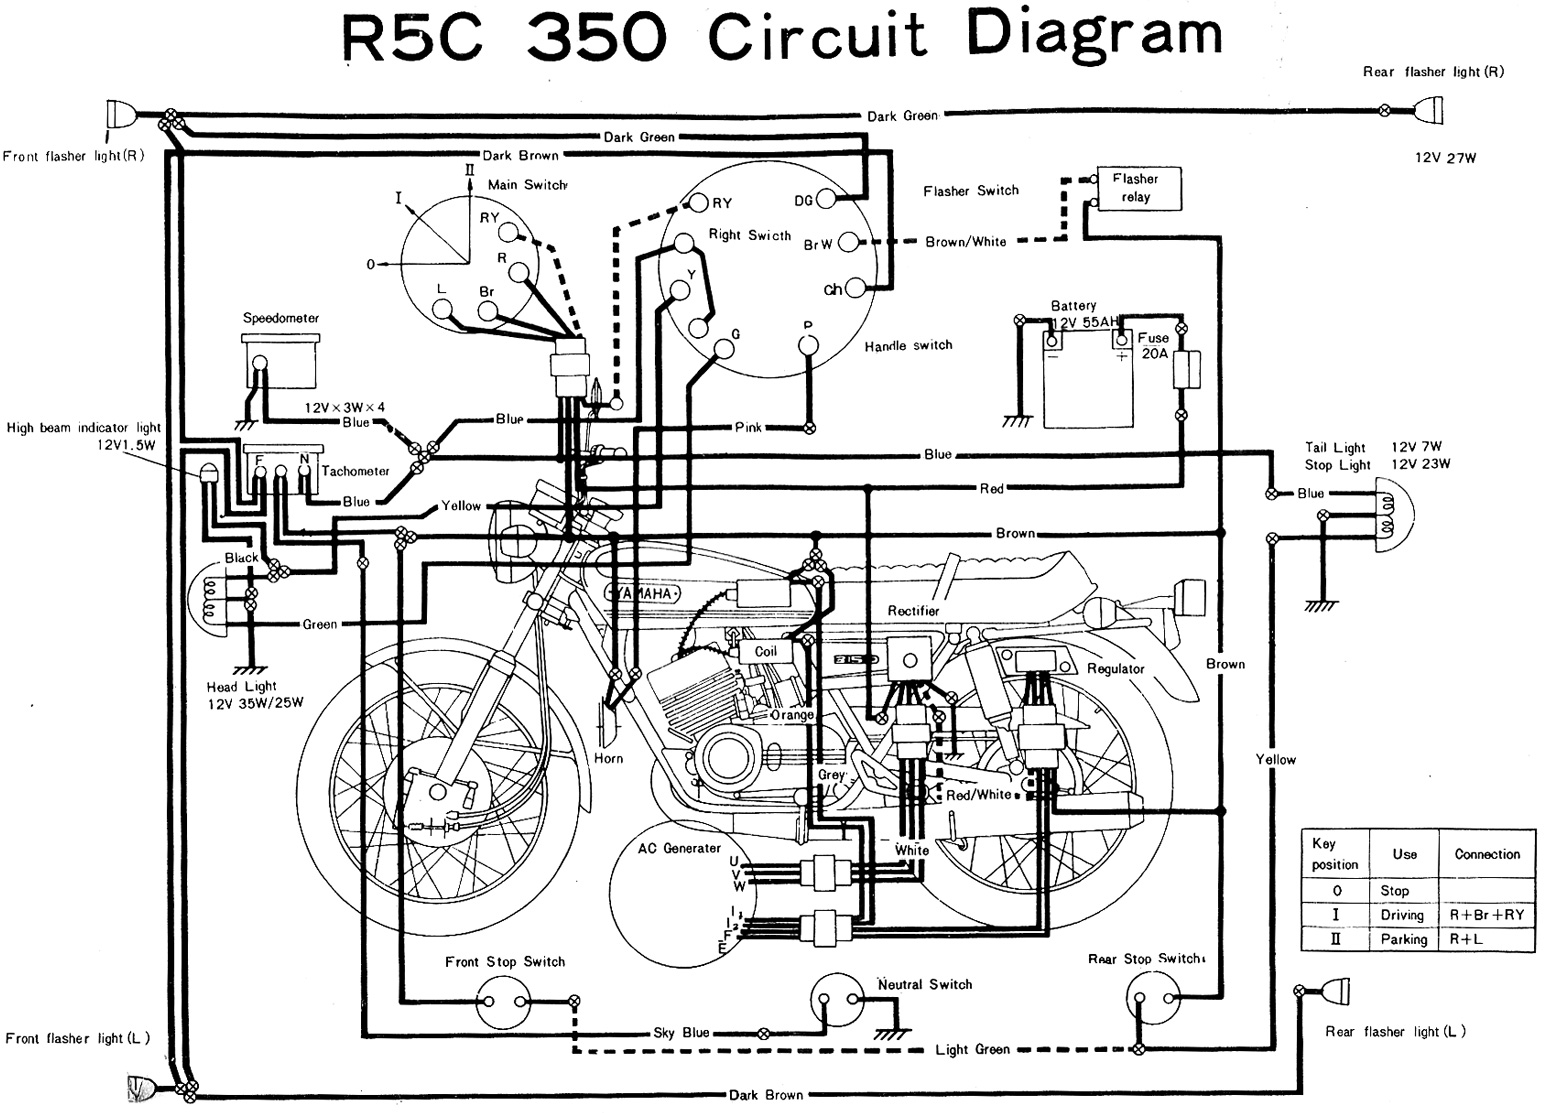 Ural Motorcycle Wiring Diagram | Wiring Diagram on ural parts, ural engine diagram, ural ignition diagram,